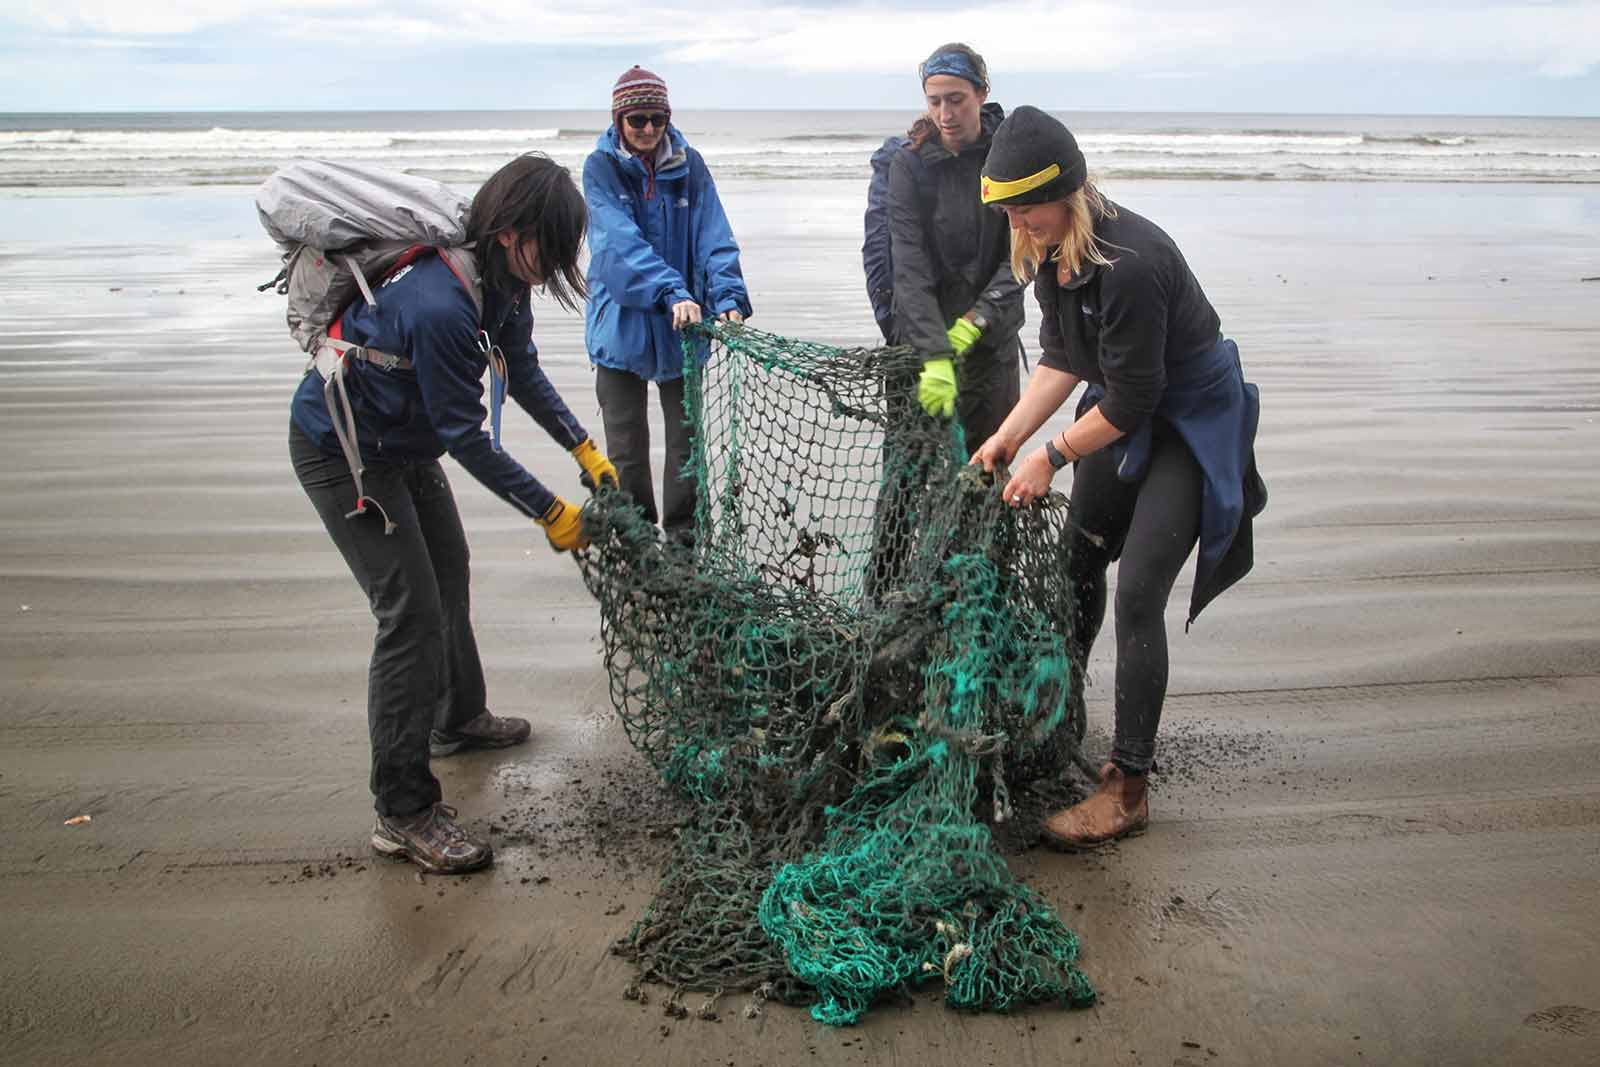 cleaning fishing nets off a beach